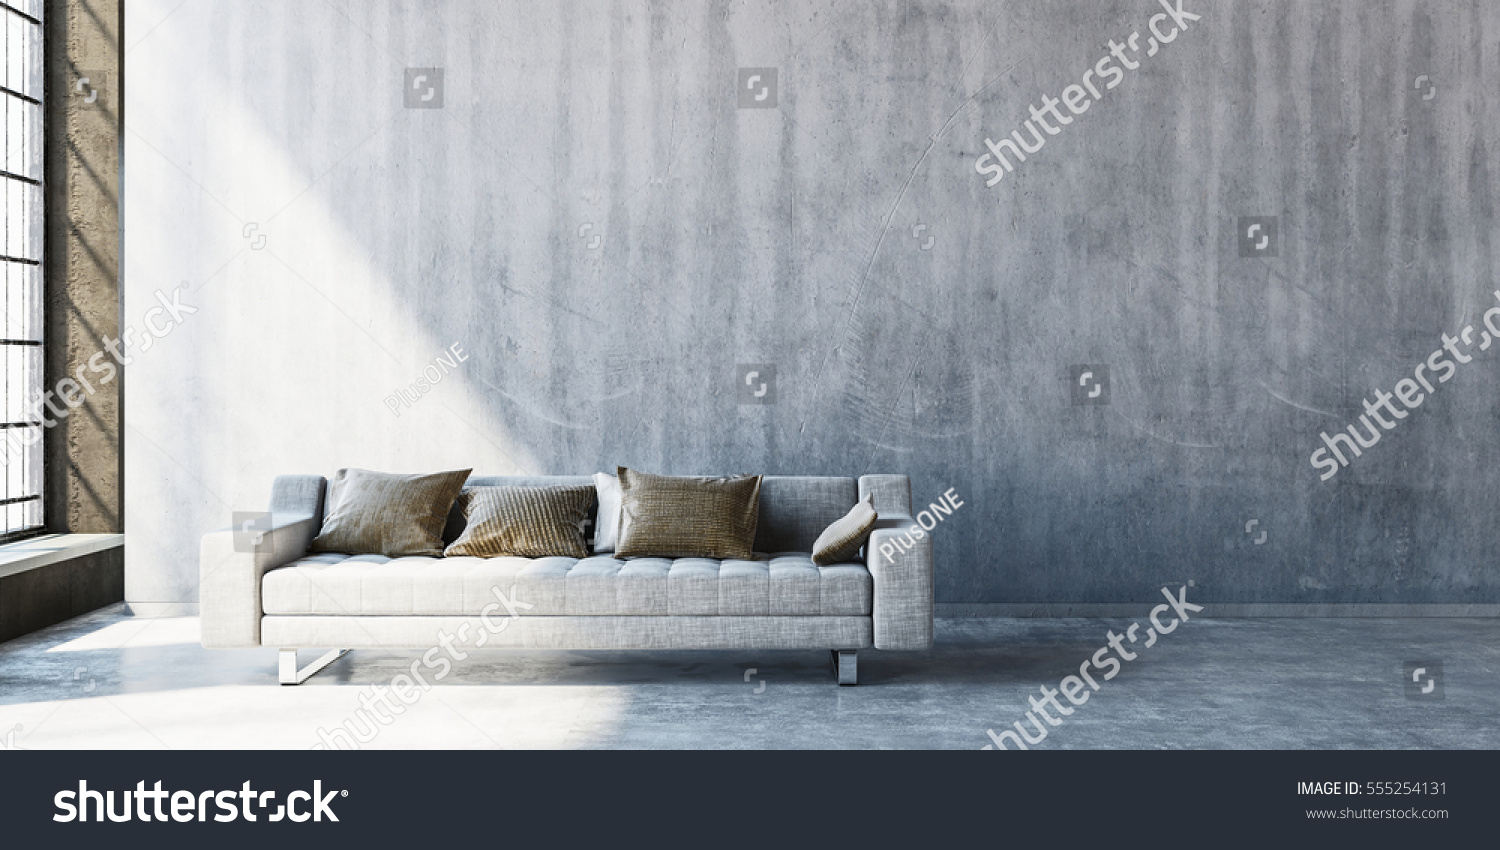 Empty living room with large windows can be as background stock - 3d Rendering Of Large Sofa On Concrete Floor With Wide Blank Wall Beside Tall Window